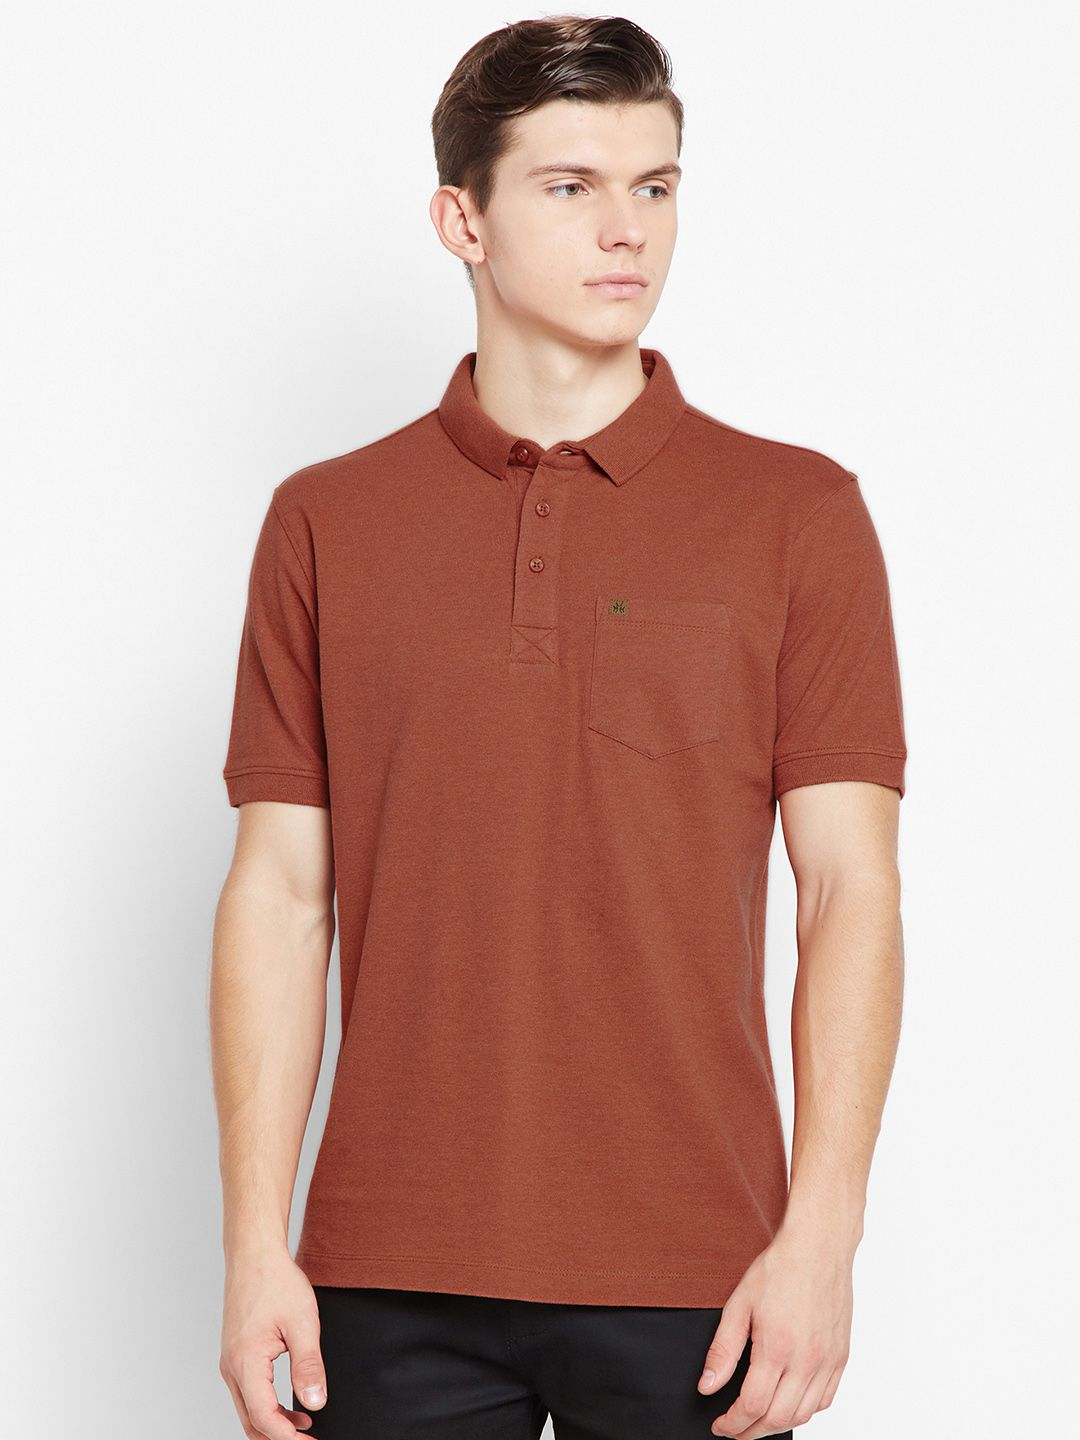 a50450f1 Crimsoune Club Red Slim Fit Polo T Shirt - Buy Crimsoune Club Red Slim Fit  Polo T Shirt Online at Low Price - Snapdeal.com